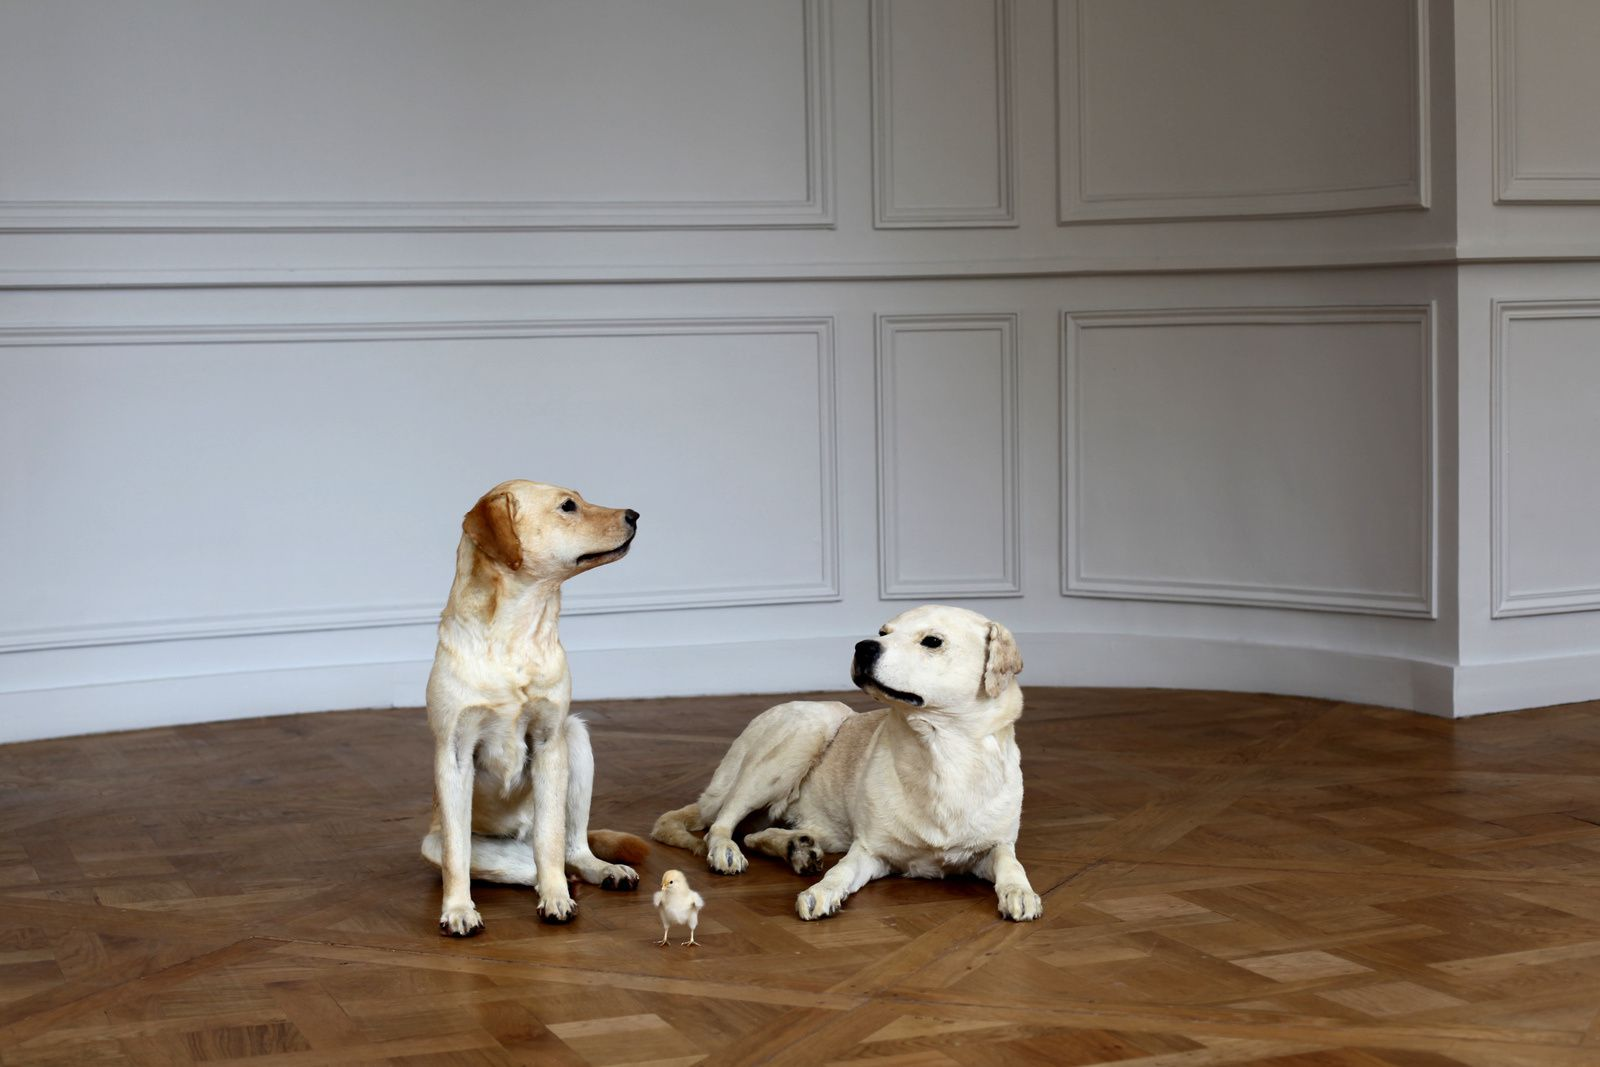 """Sans titre"", 2001 de Maurizio CATTELAN - Courtesy Collection Privée © Photo Éric Simon"